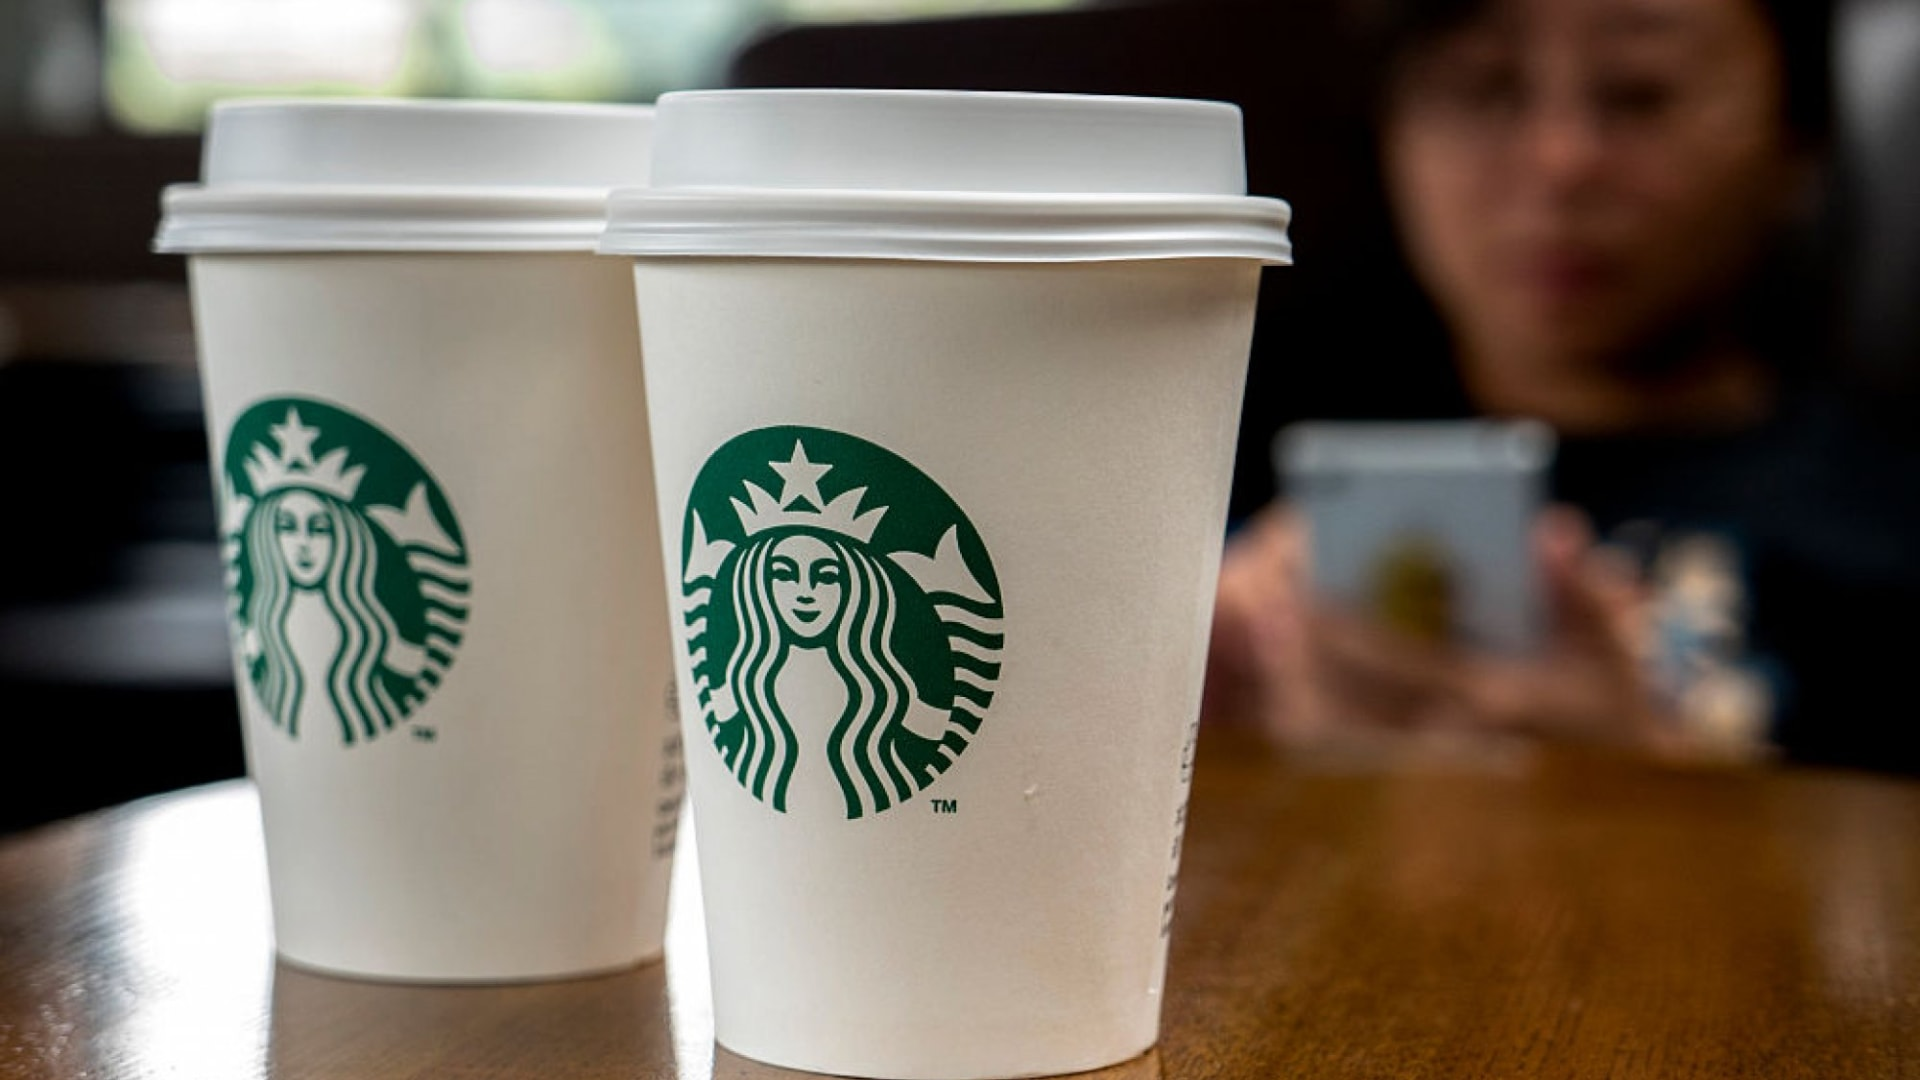 Starbucks Just Lost $1.2 Billion in Sales but Still Came Out Ahead Because of This Brilliant Decision It Made 5 Years Ago